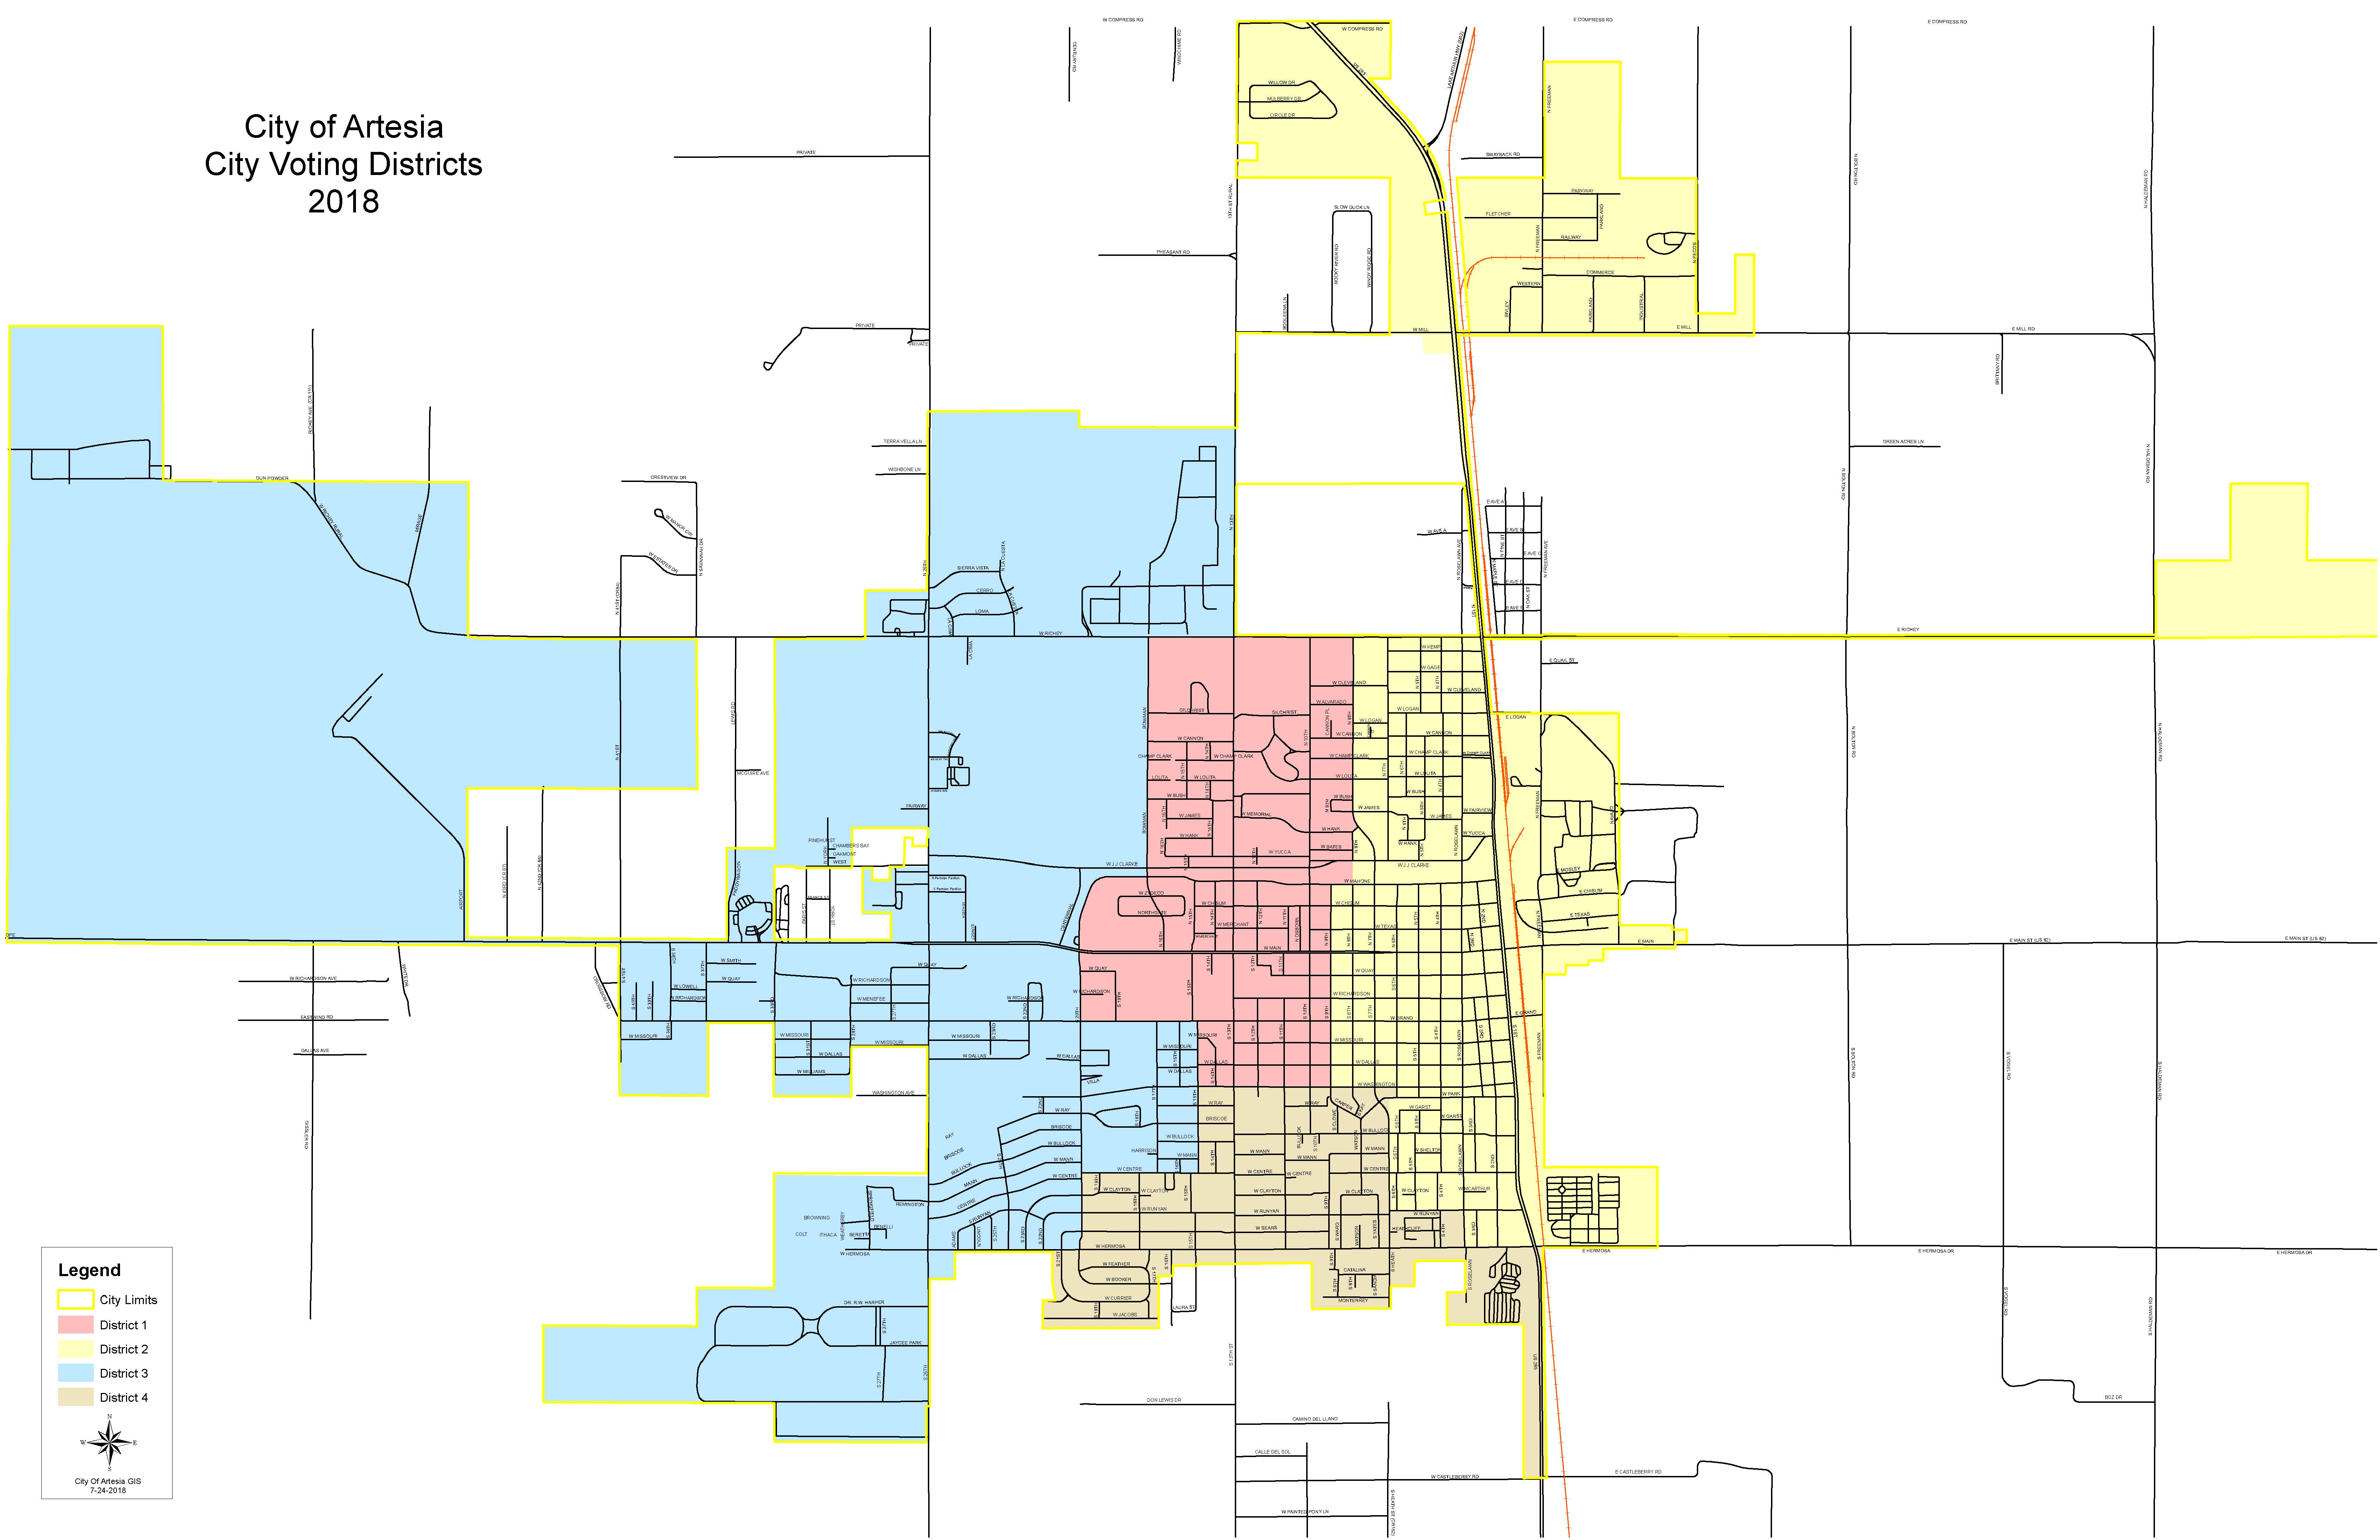 Artesia Voting Districts Map Opens in new window